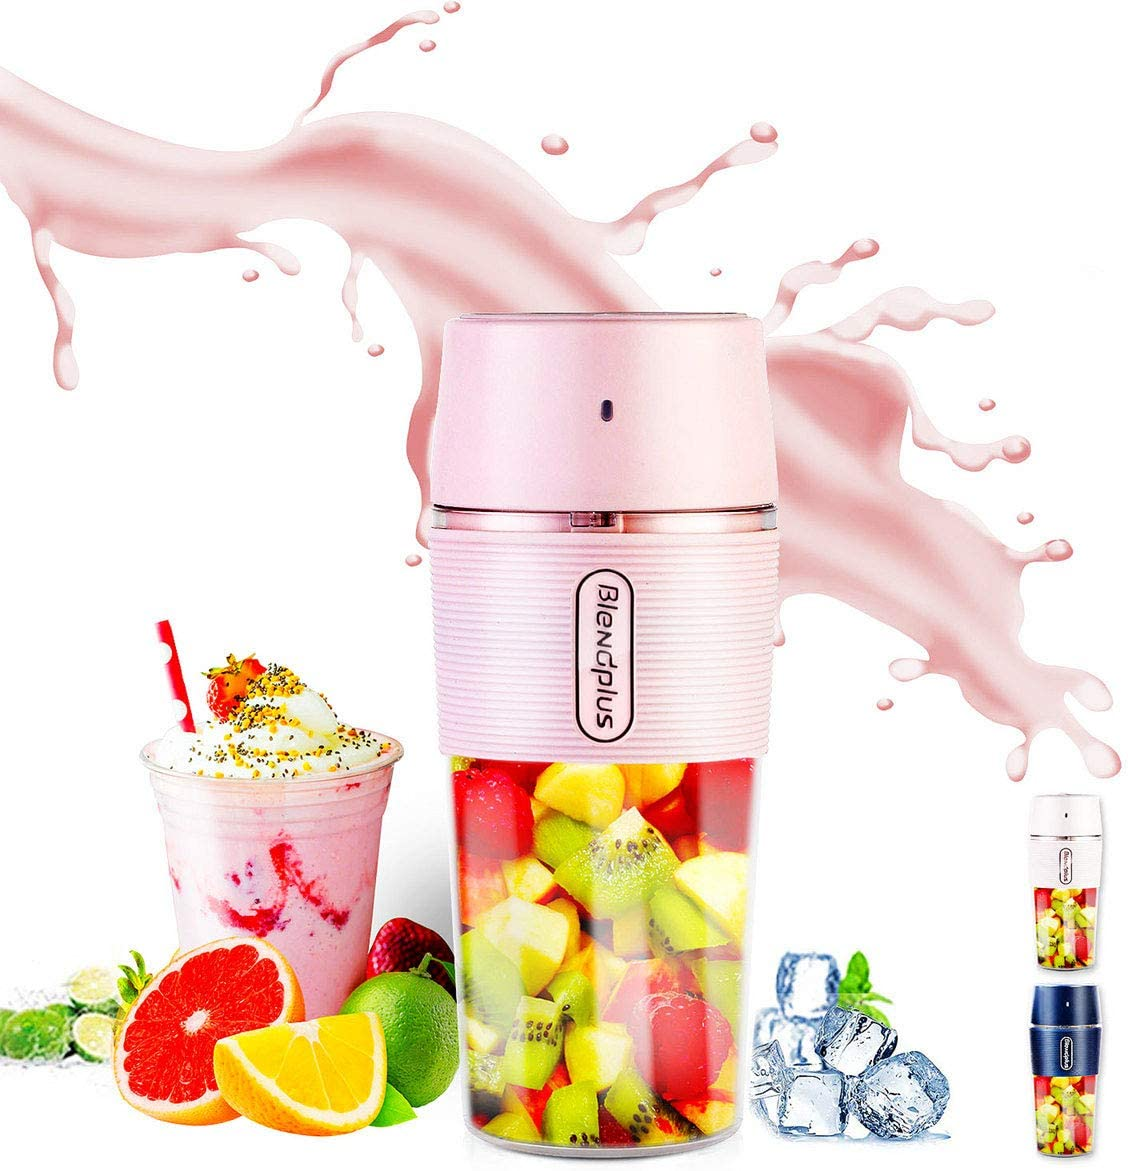 Portable Blender,ARTSUN Mini Blender USB Rechargeable Small Blender Personal Cup Juicer Waterproof,10.5oz(PINK)